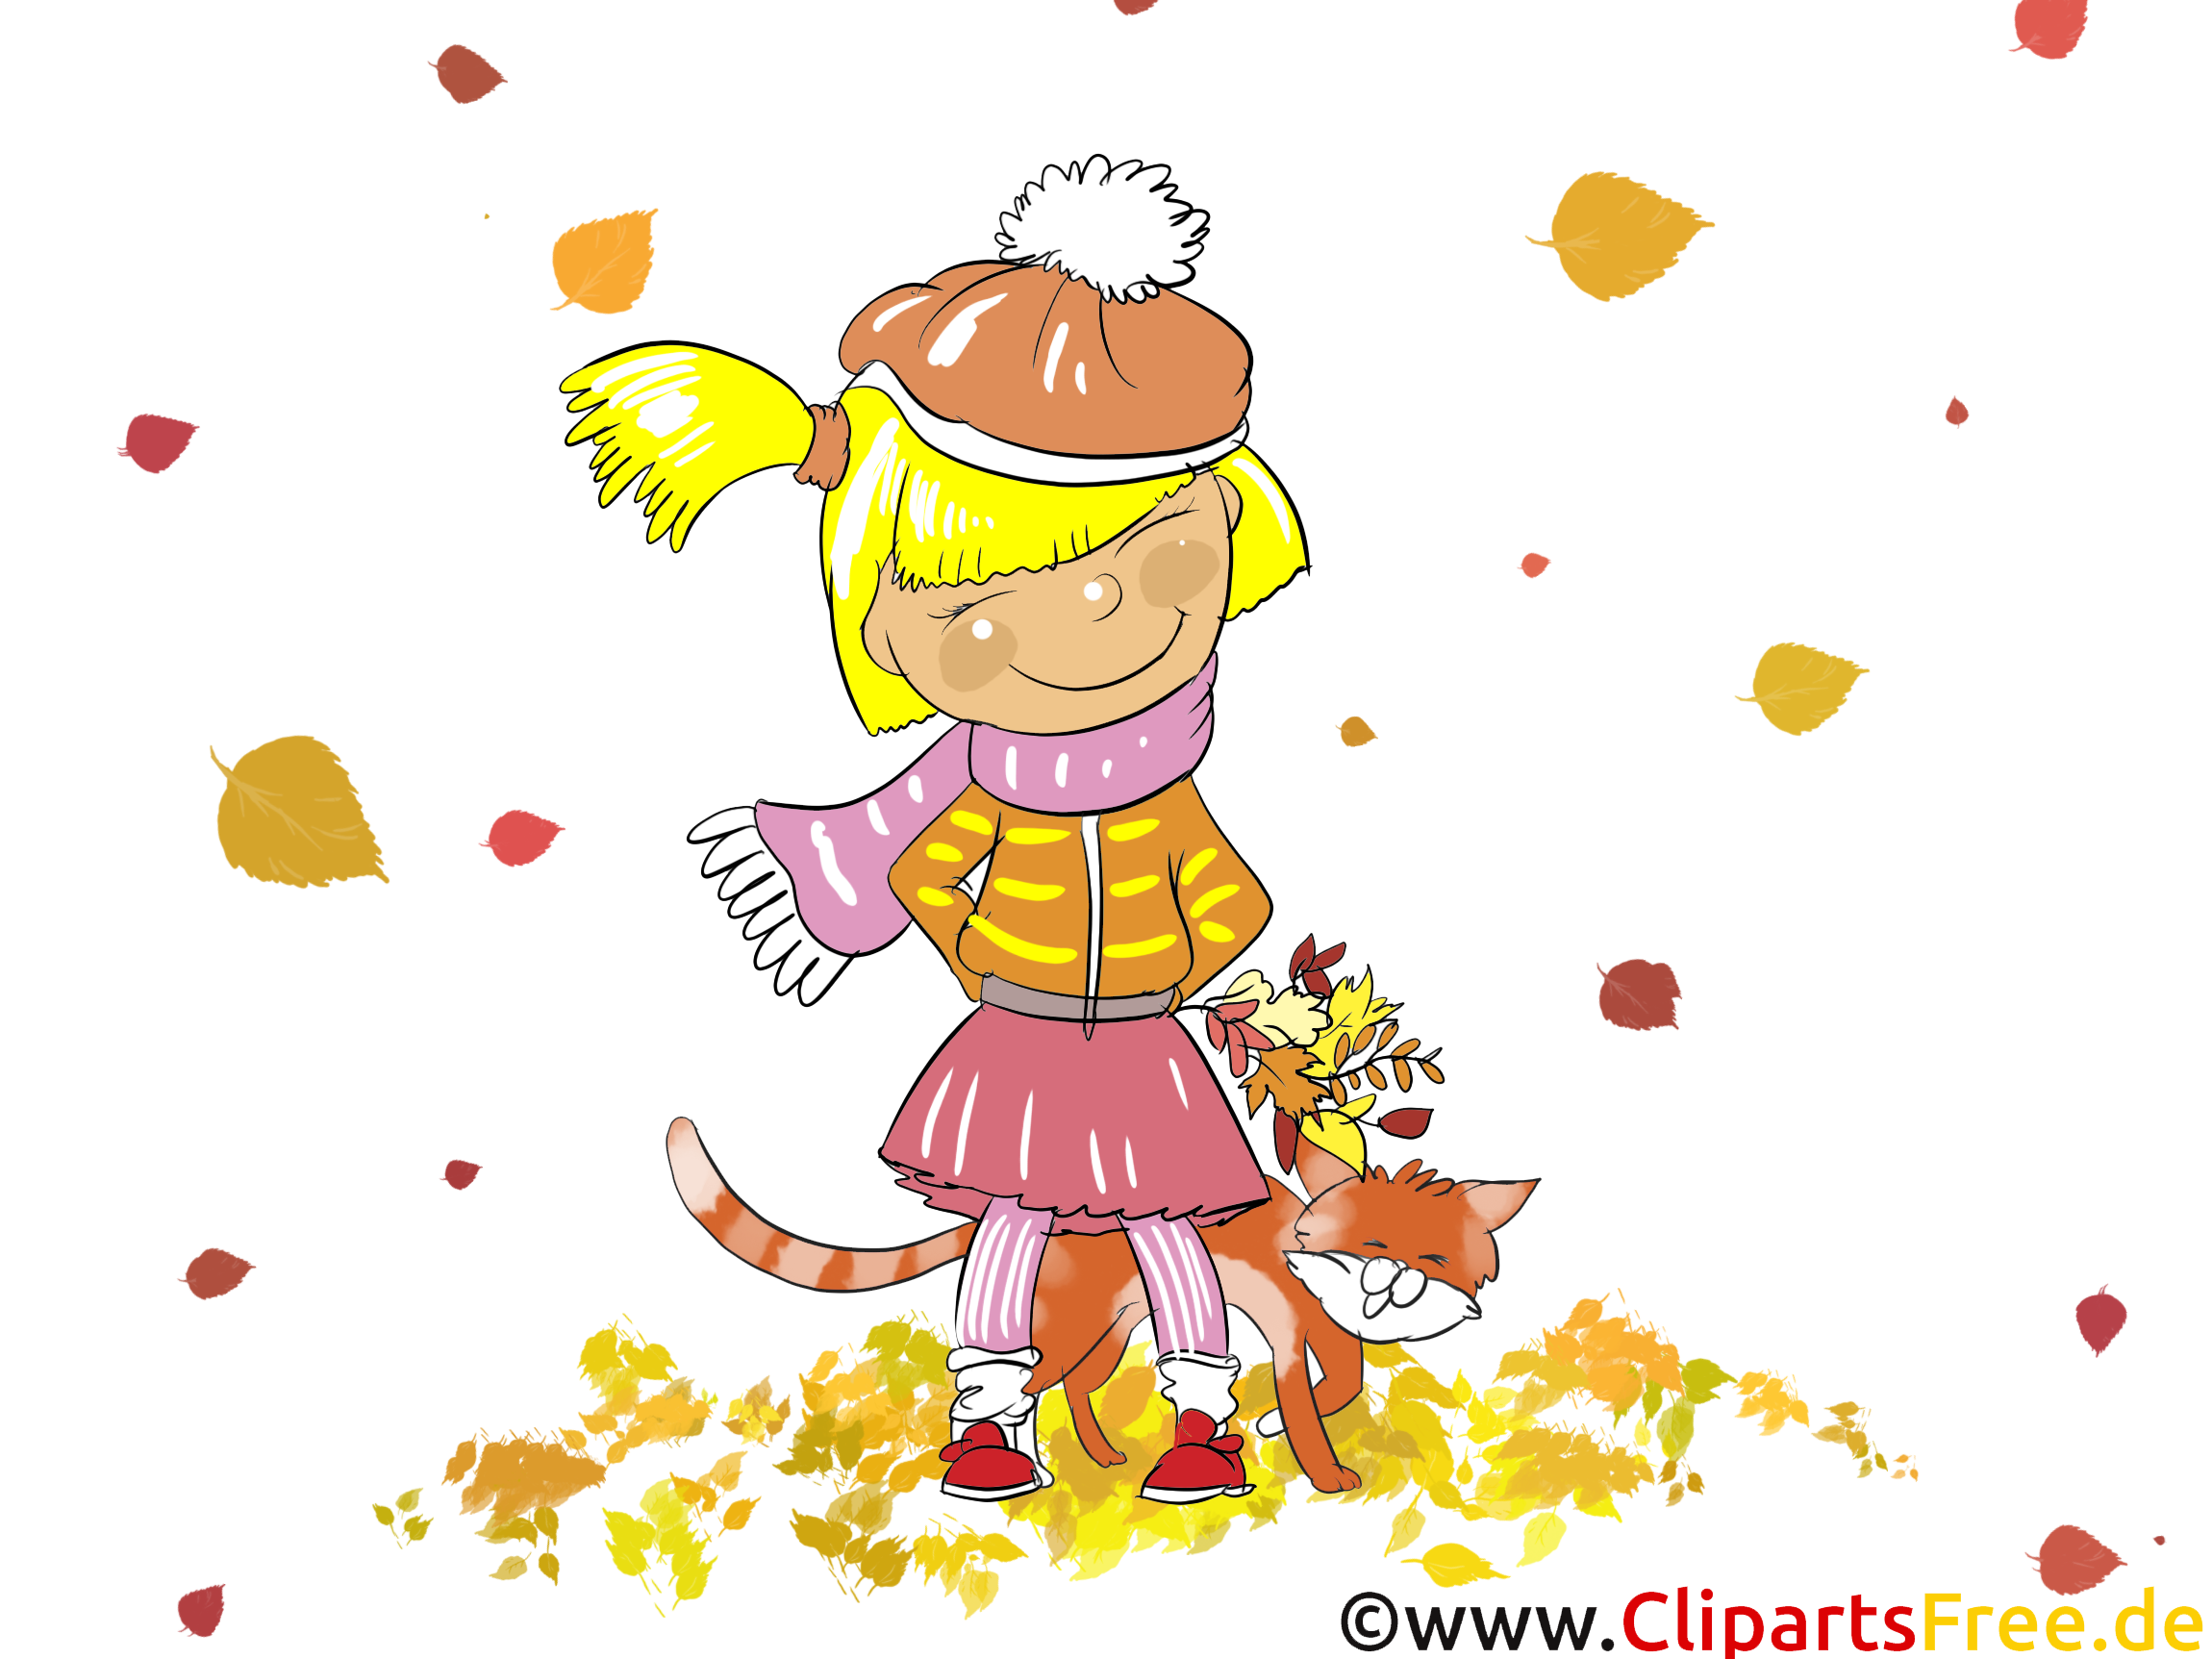 Fille chat image gratuite – Automne cliparts